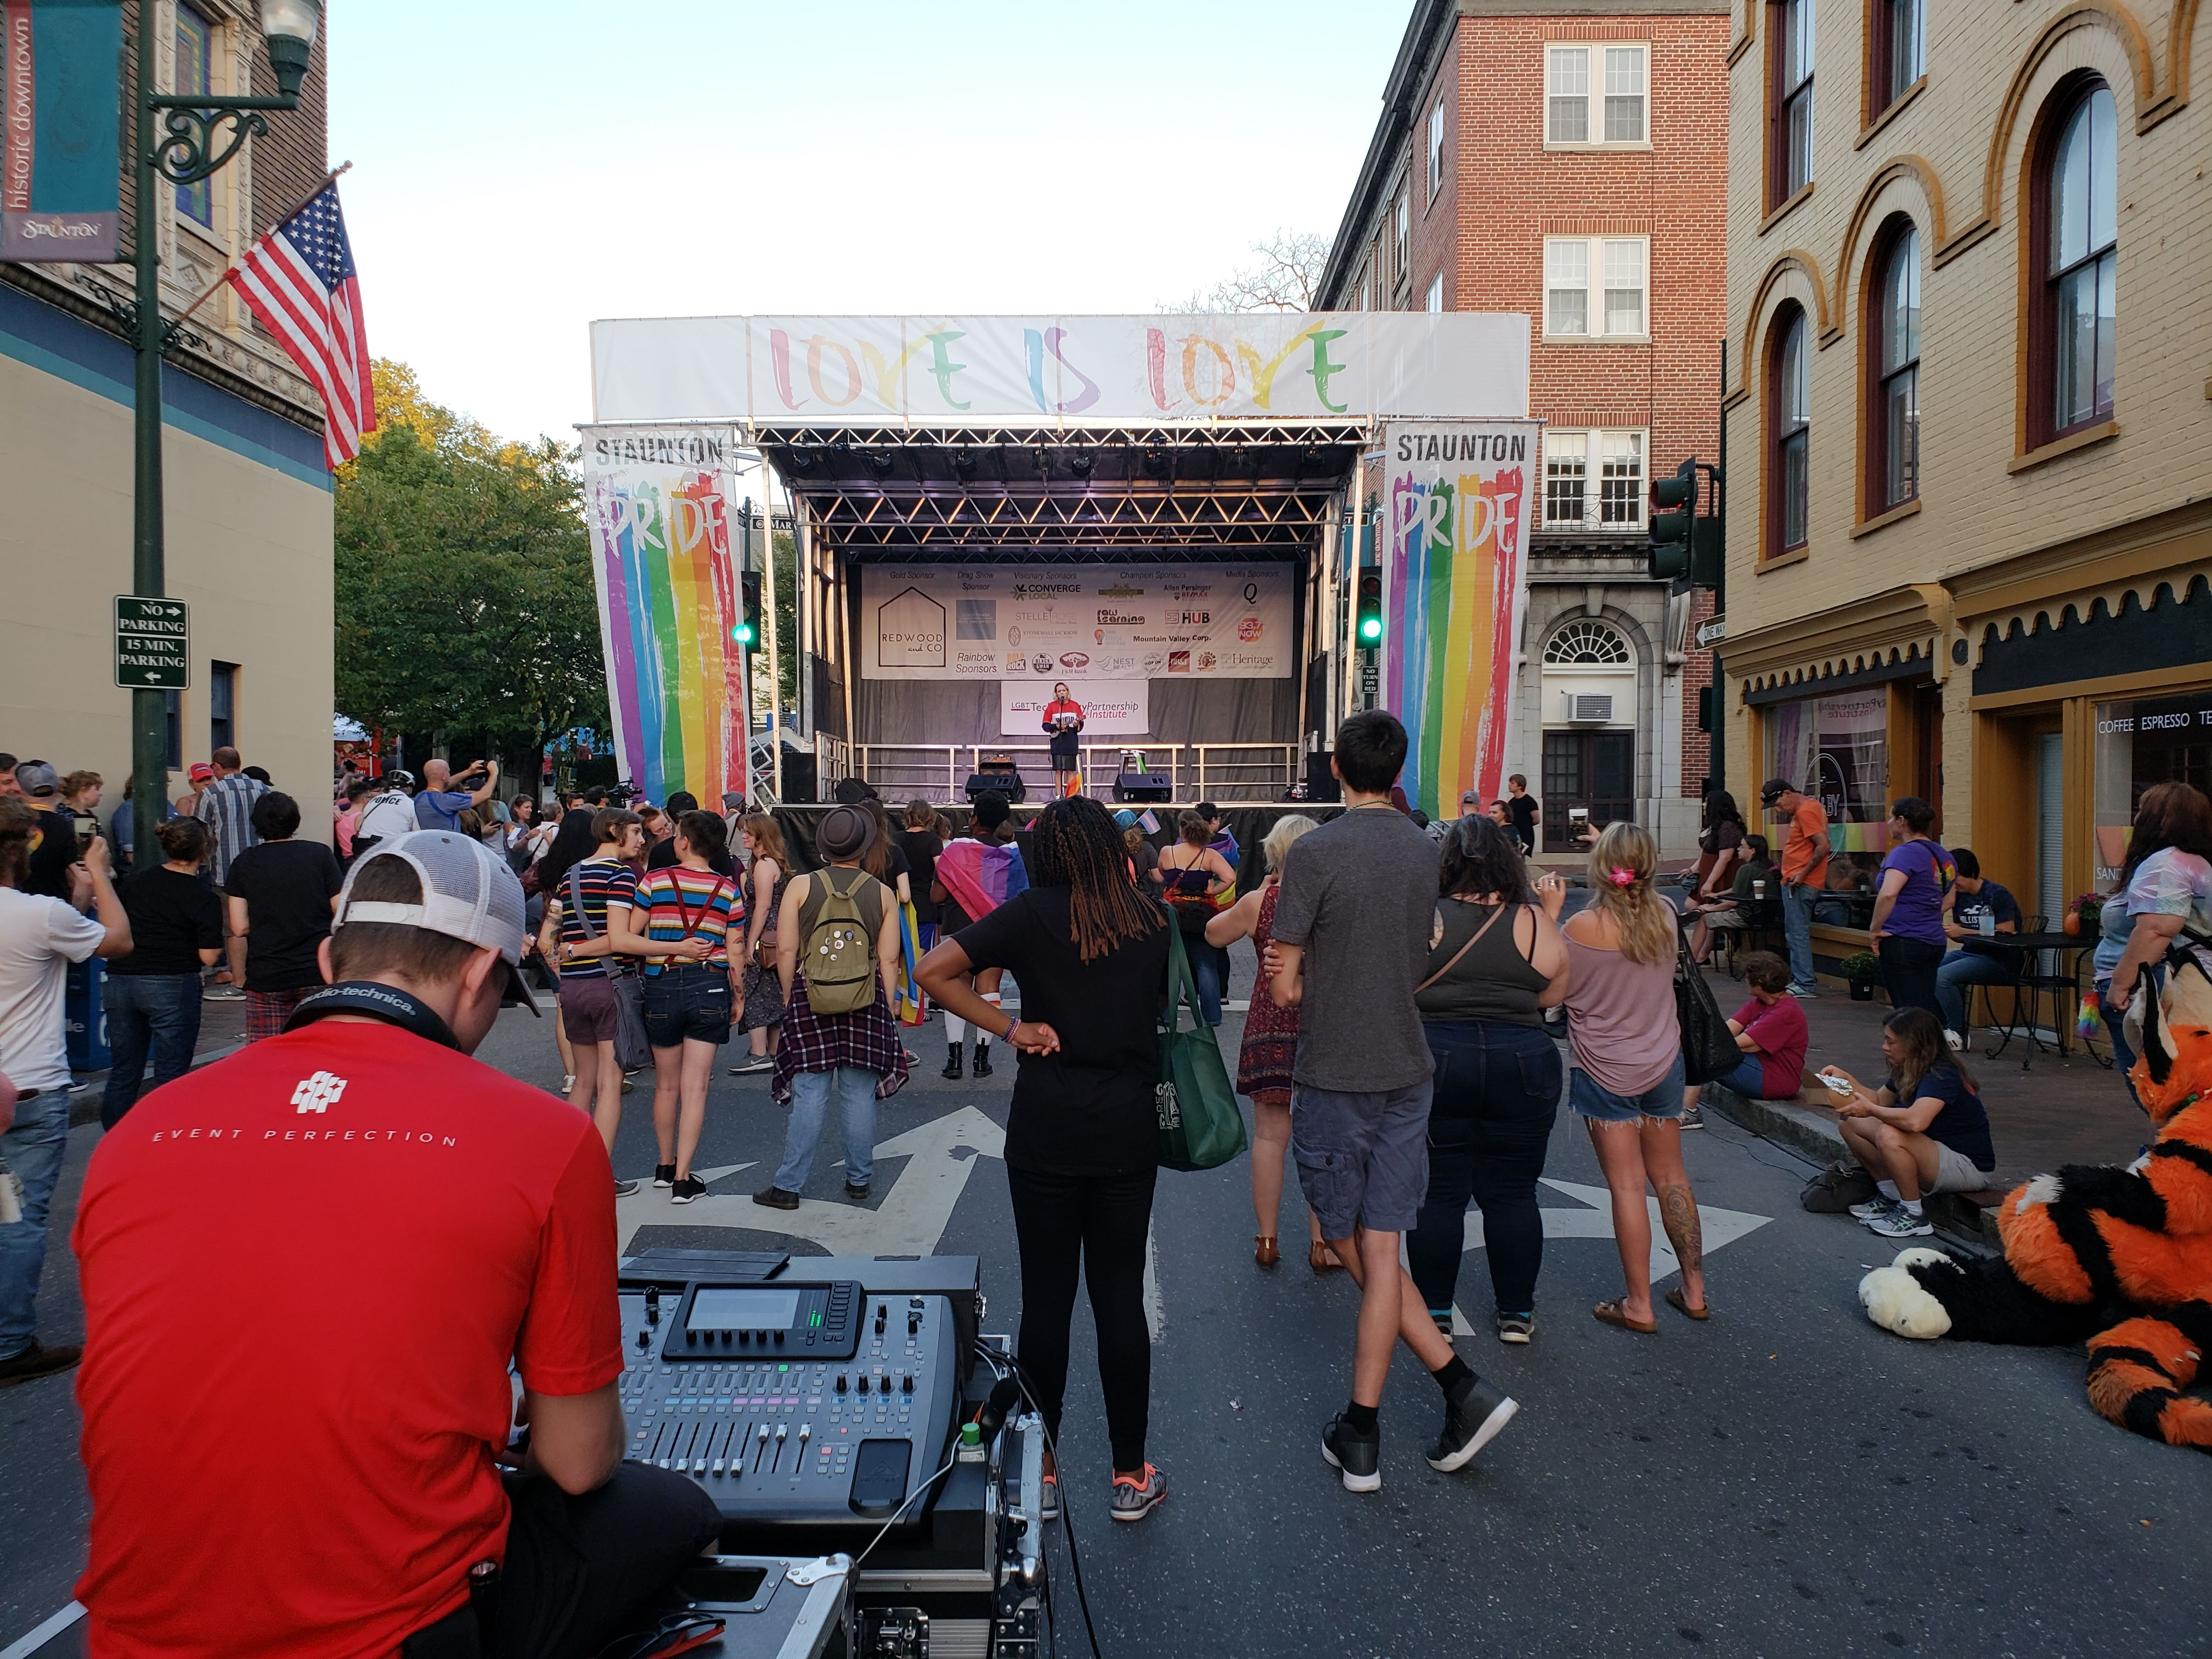 An LSC Audio Engineer operates the sound system at Staunton Pride Festival